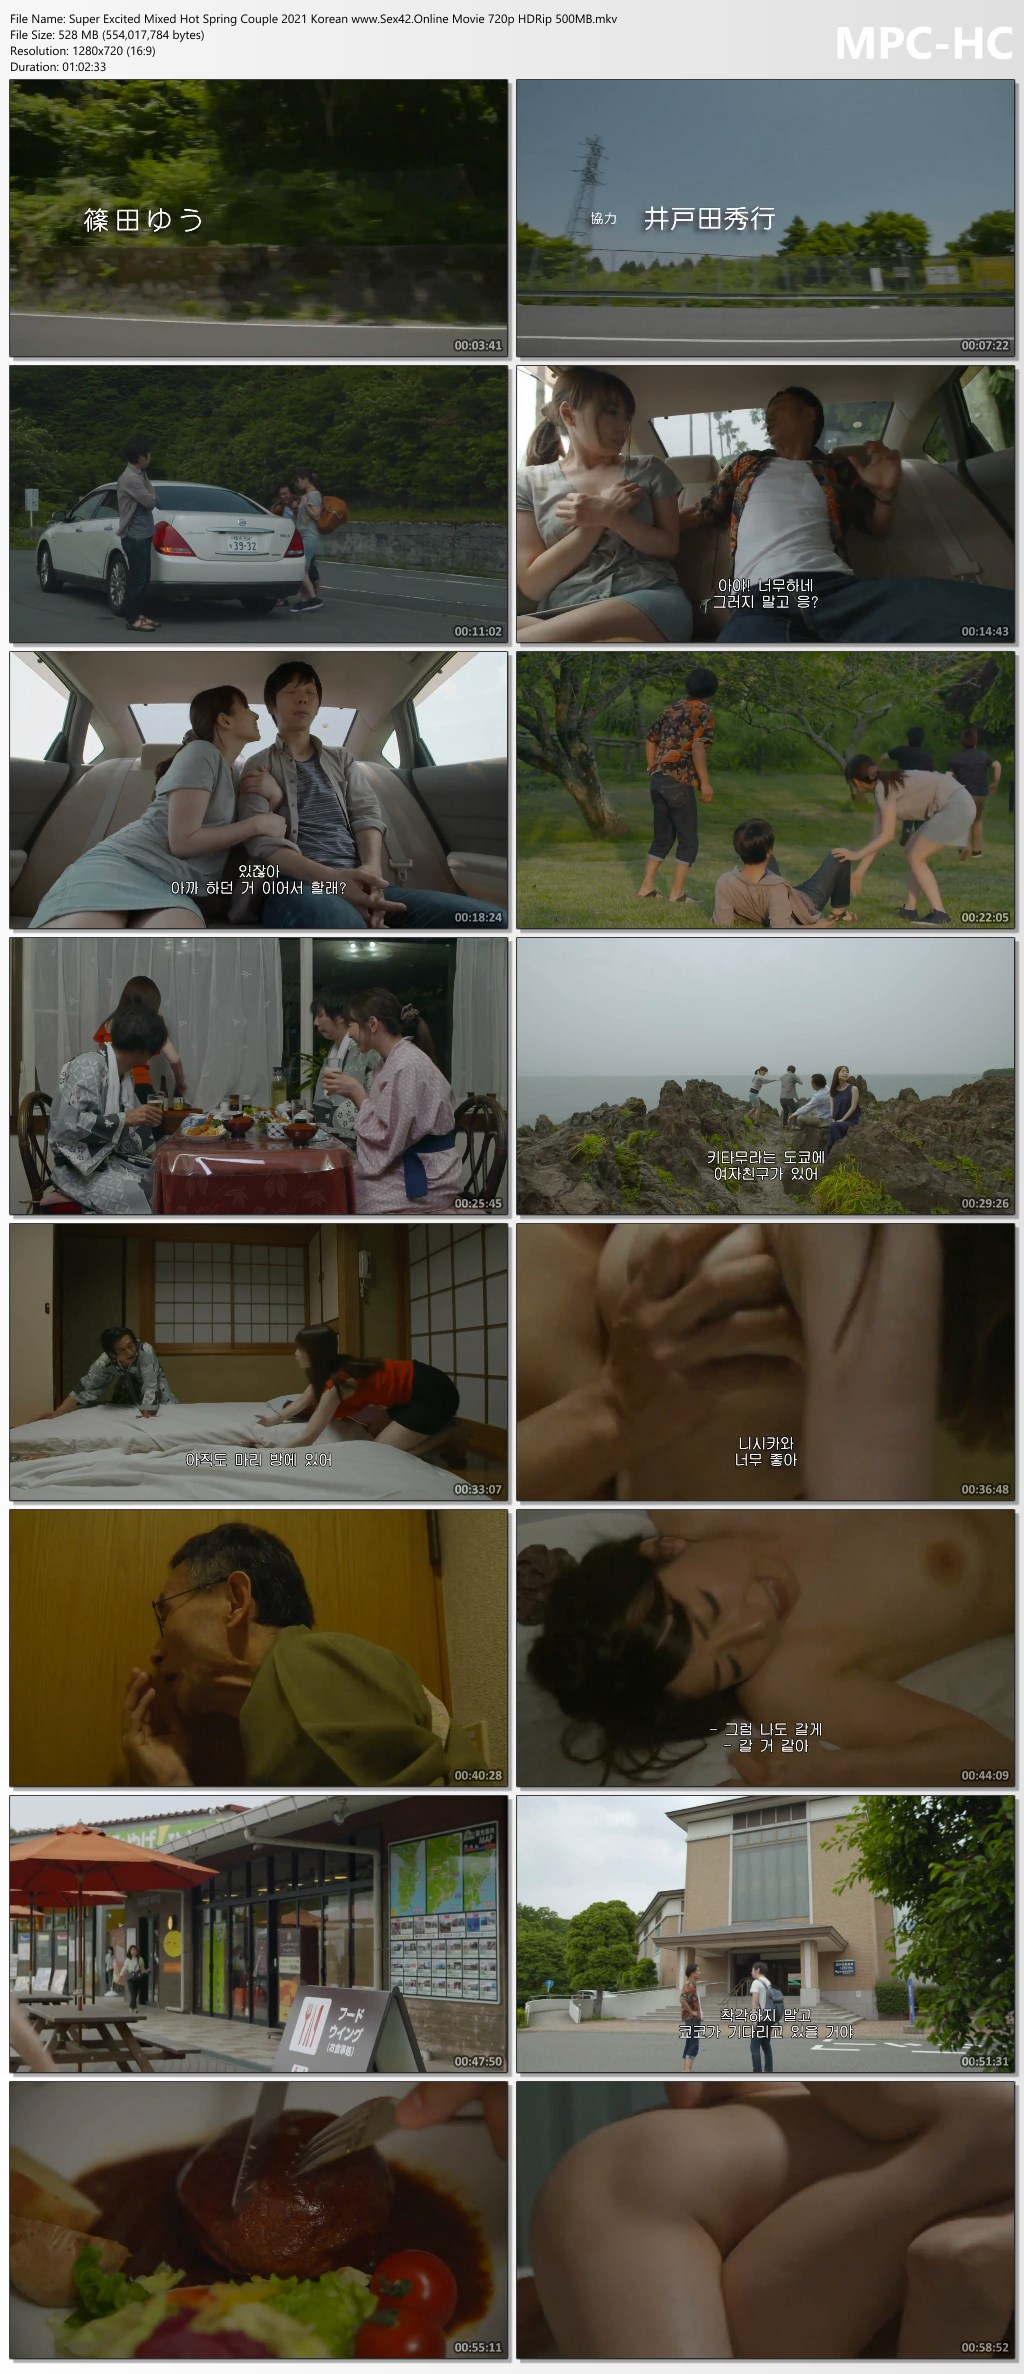 Super-Excited-Mixed-Hot-Spring-Couple-2021-Korean-www-Sex42-Online-Movie-720p-HDRip-500-MB-mkv-thumb